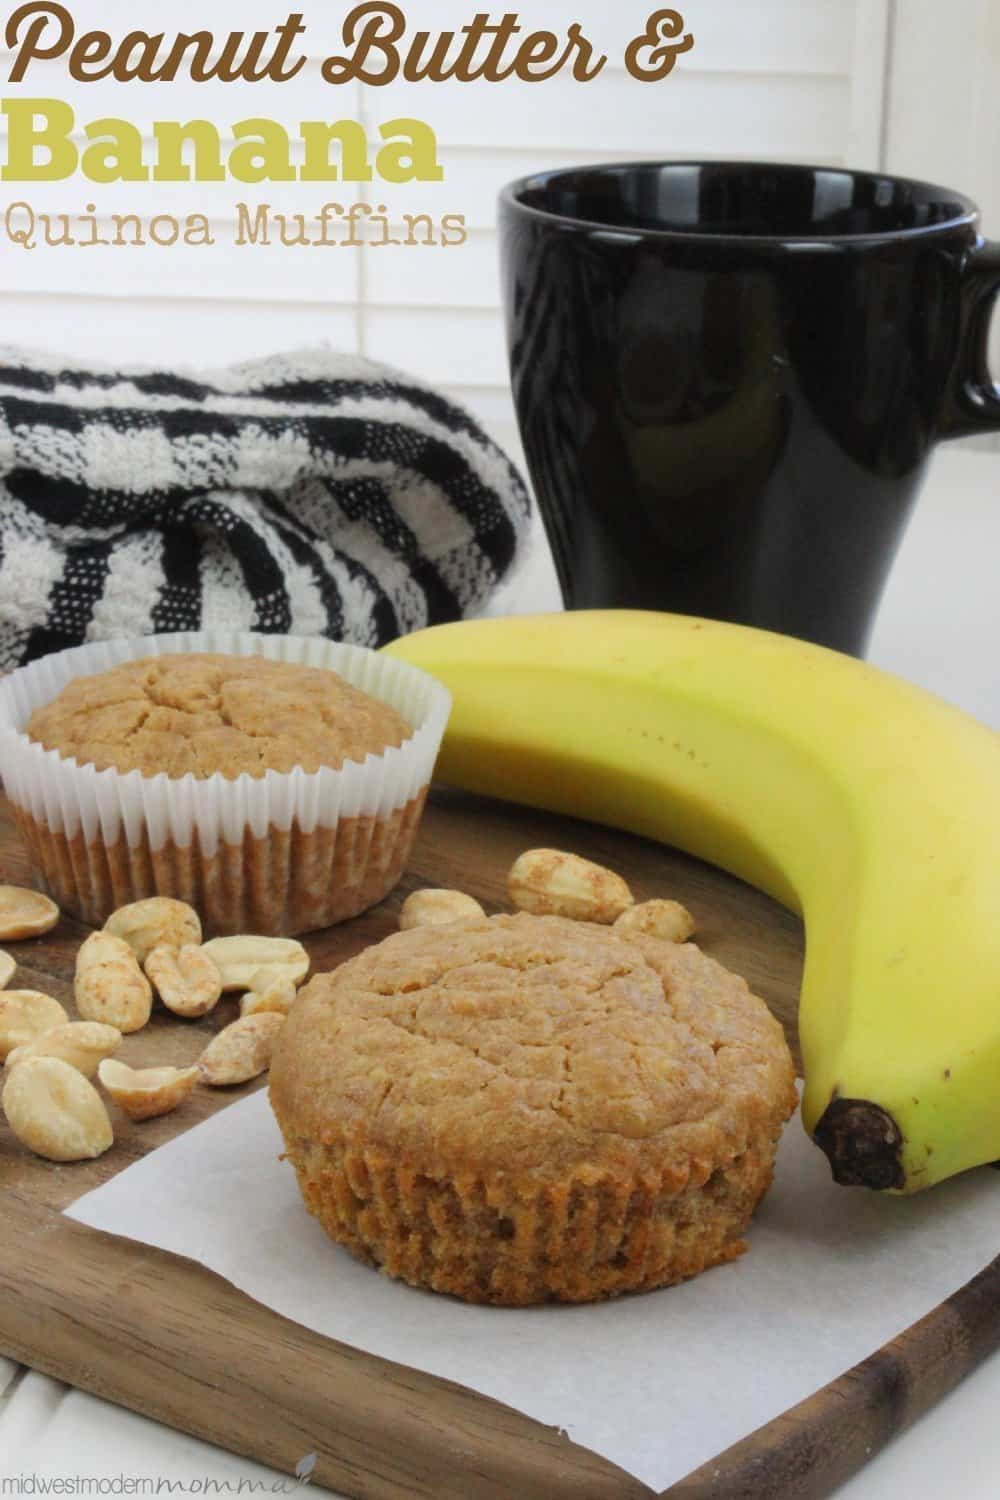 Peanut Butter and Banana Quinoa Muffins